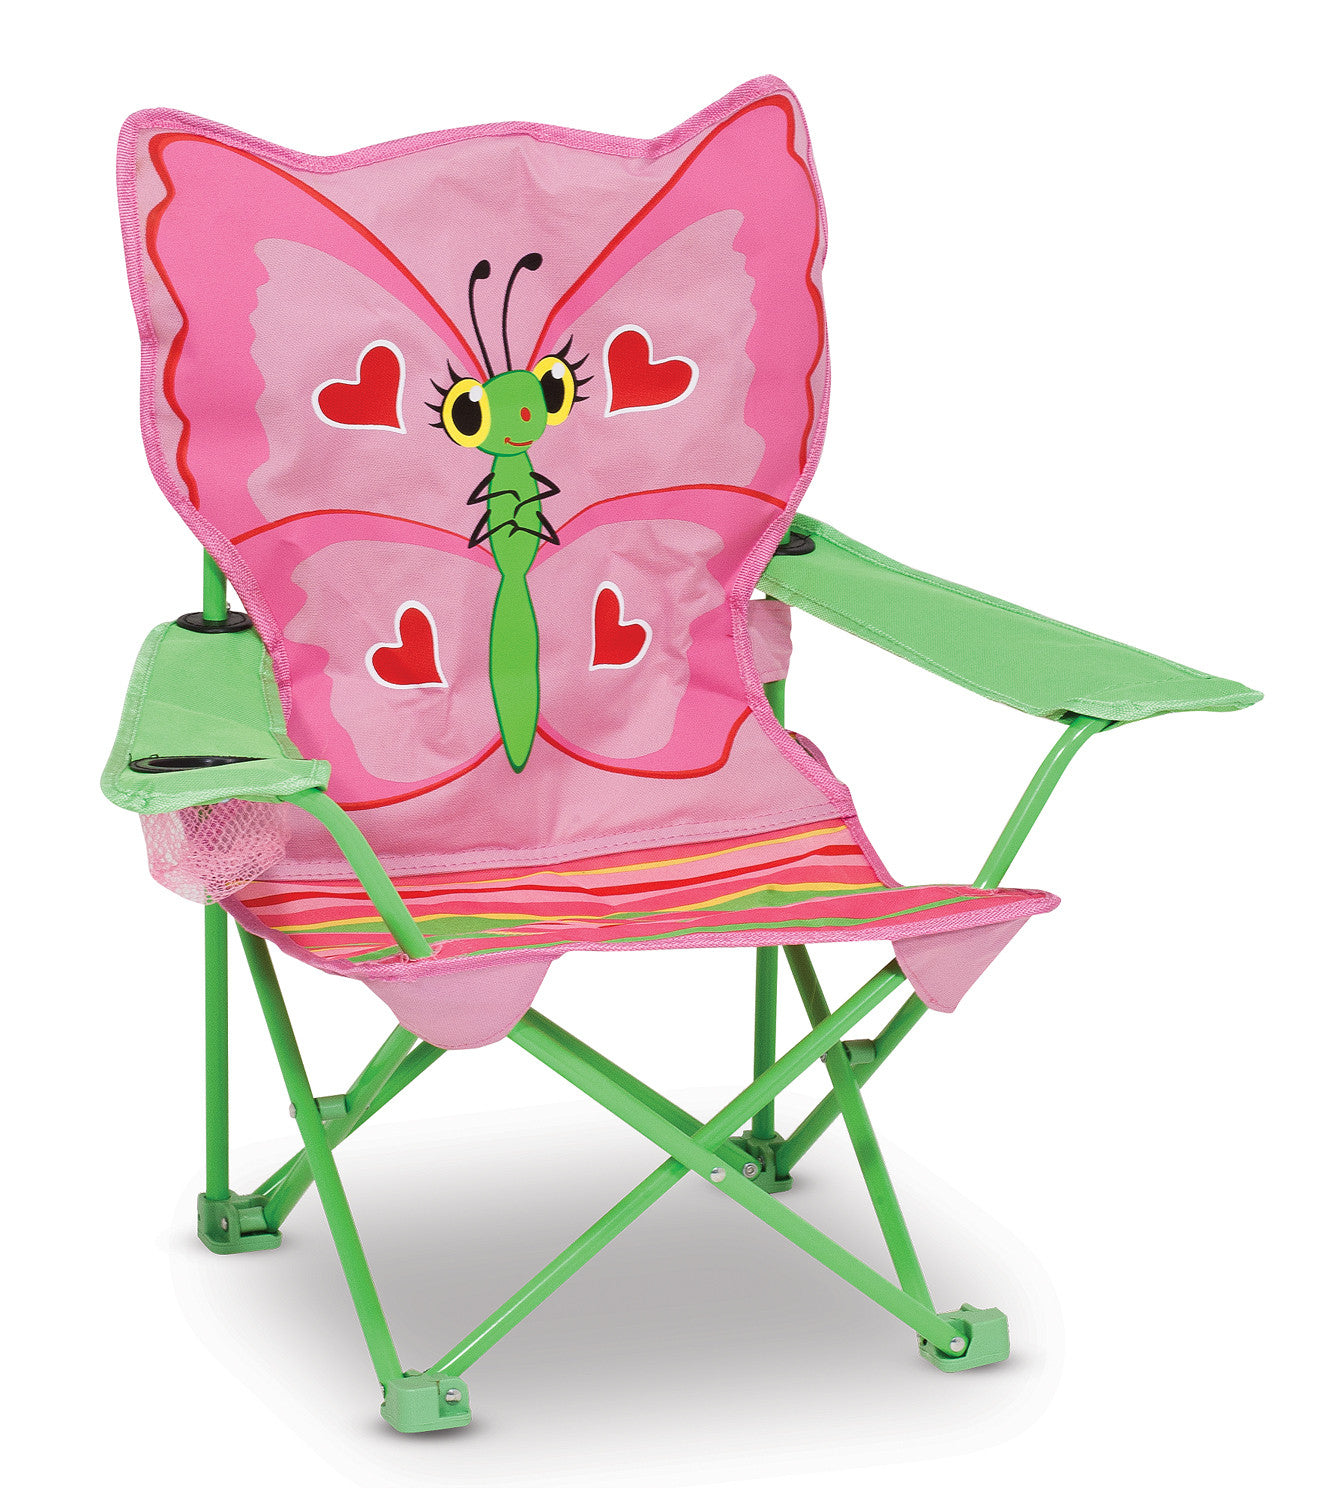 Melissa & Doug Bella Butterfly Child's Outdoor Chair 6173